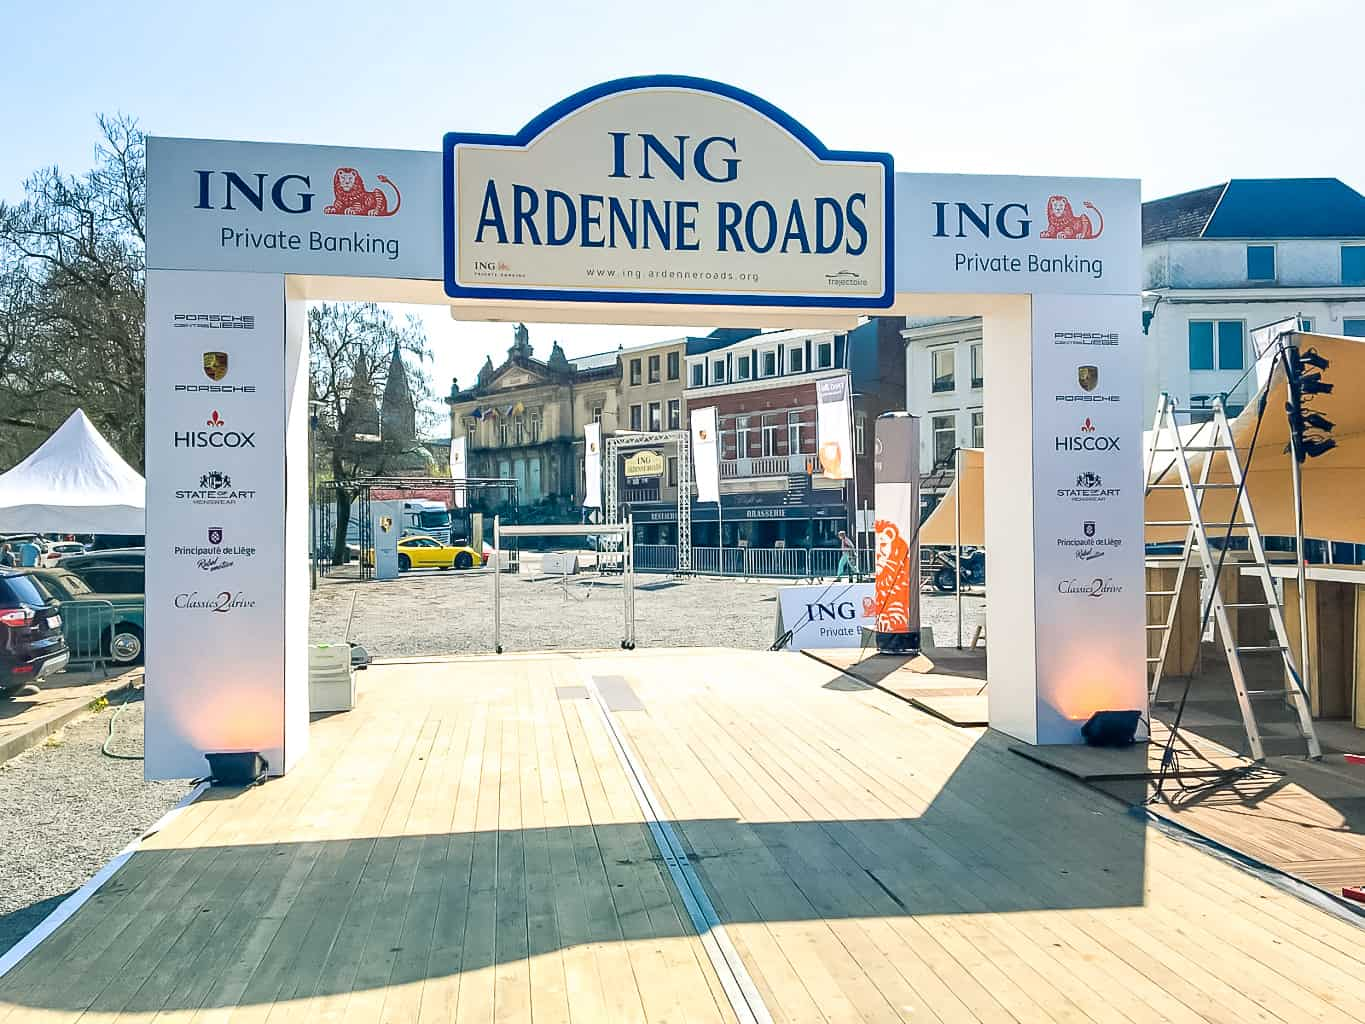 Tente pour Trajectoire à l'occasion de l'ING Ardennes Road. Conception par So Event